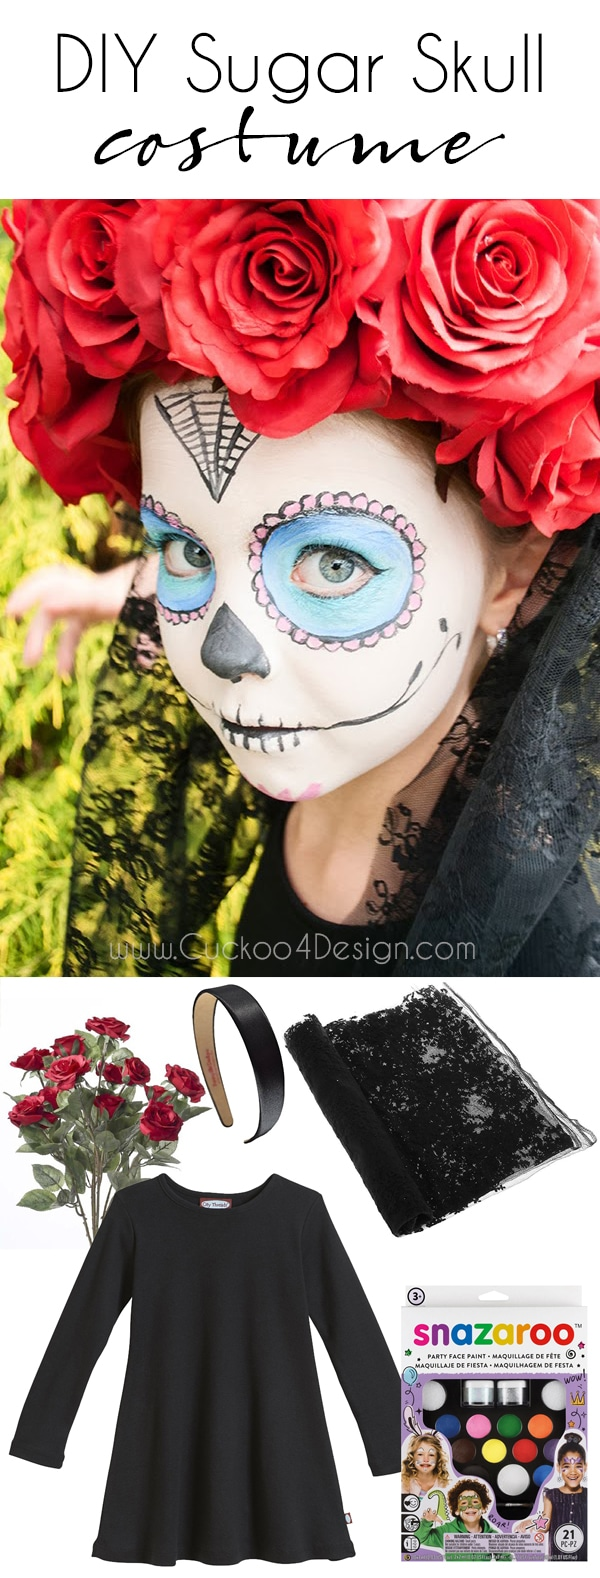 to wear - Skull sugar costume what to wear video